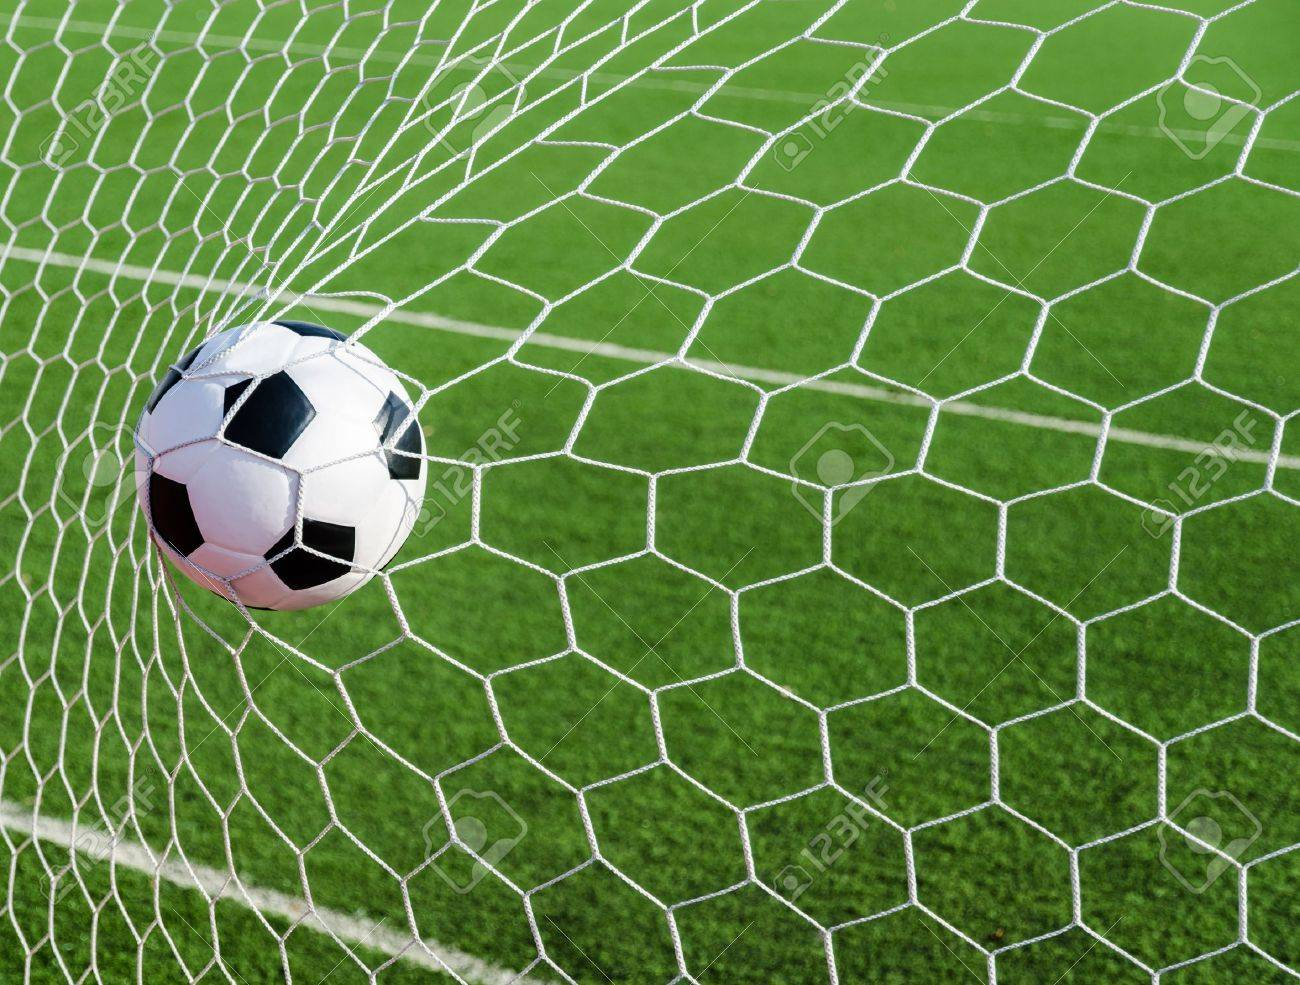 Soccer football in Goal net with green grass field Stock Photo - 18002764